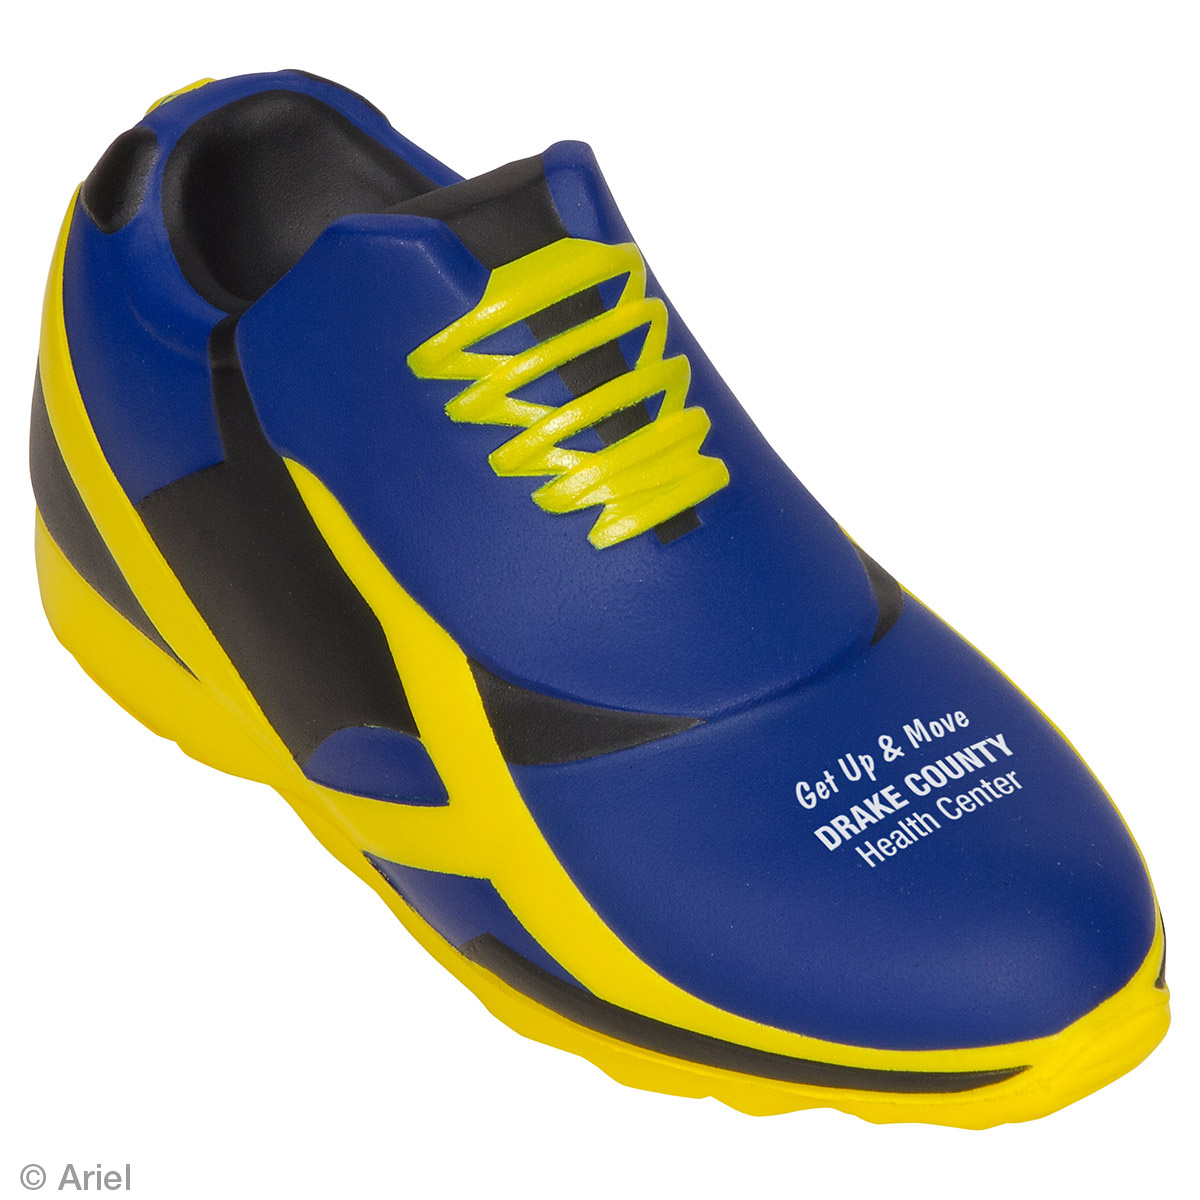 Running Shoe Stress Reliever, LSP-RS16 - 1 Colour Imprint